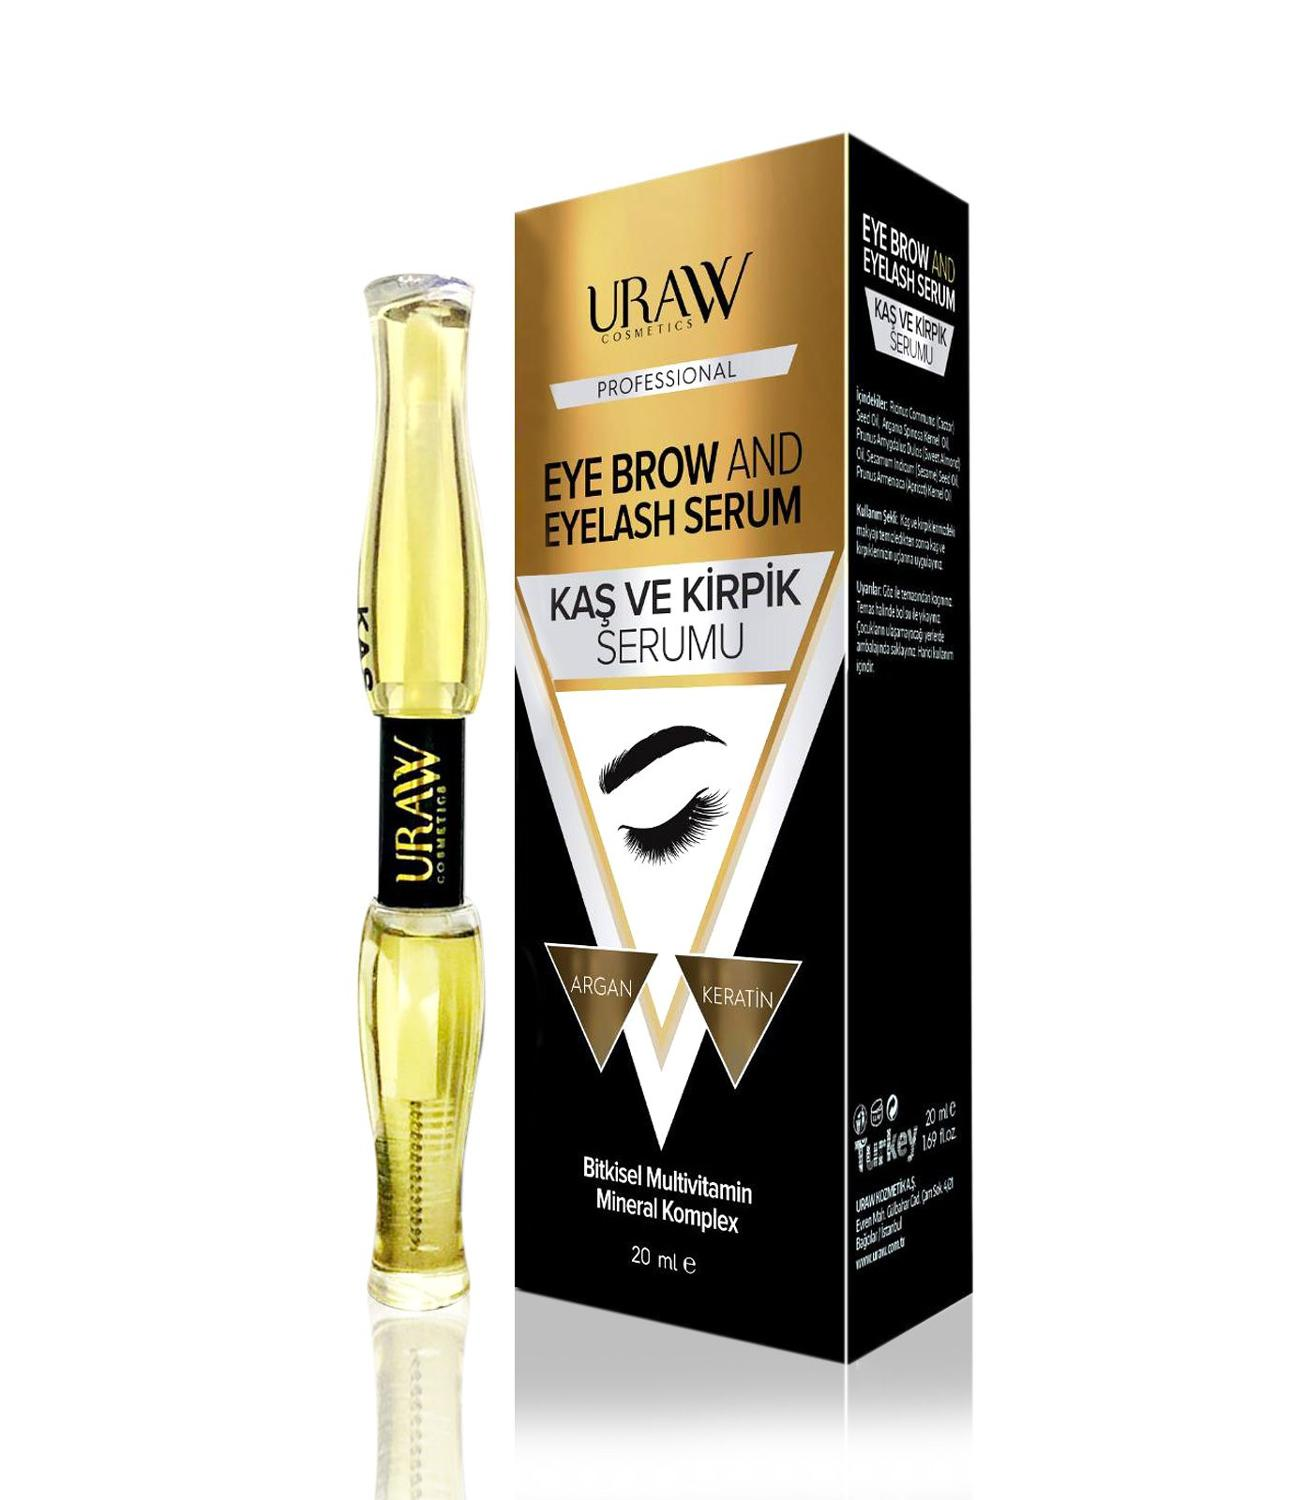 URAW EYEBROW AND EYELASH SERUM Support For The Lashes To Revive And Look Bigger